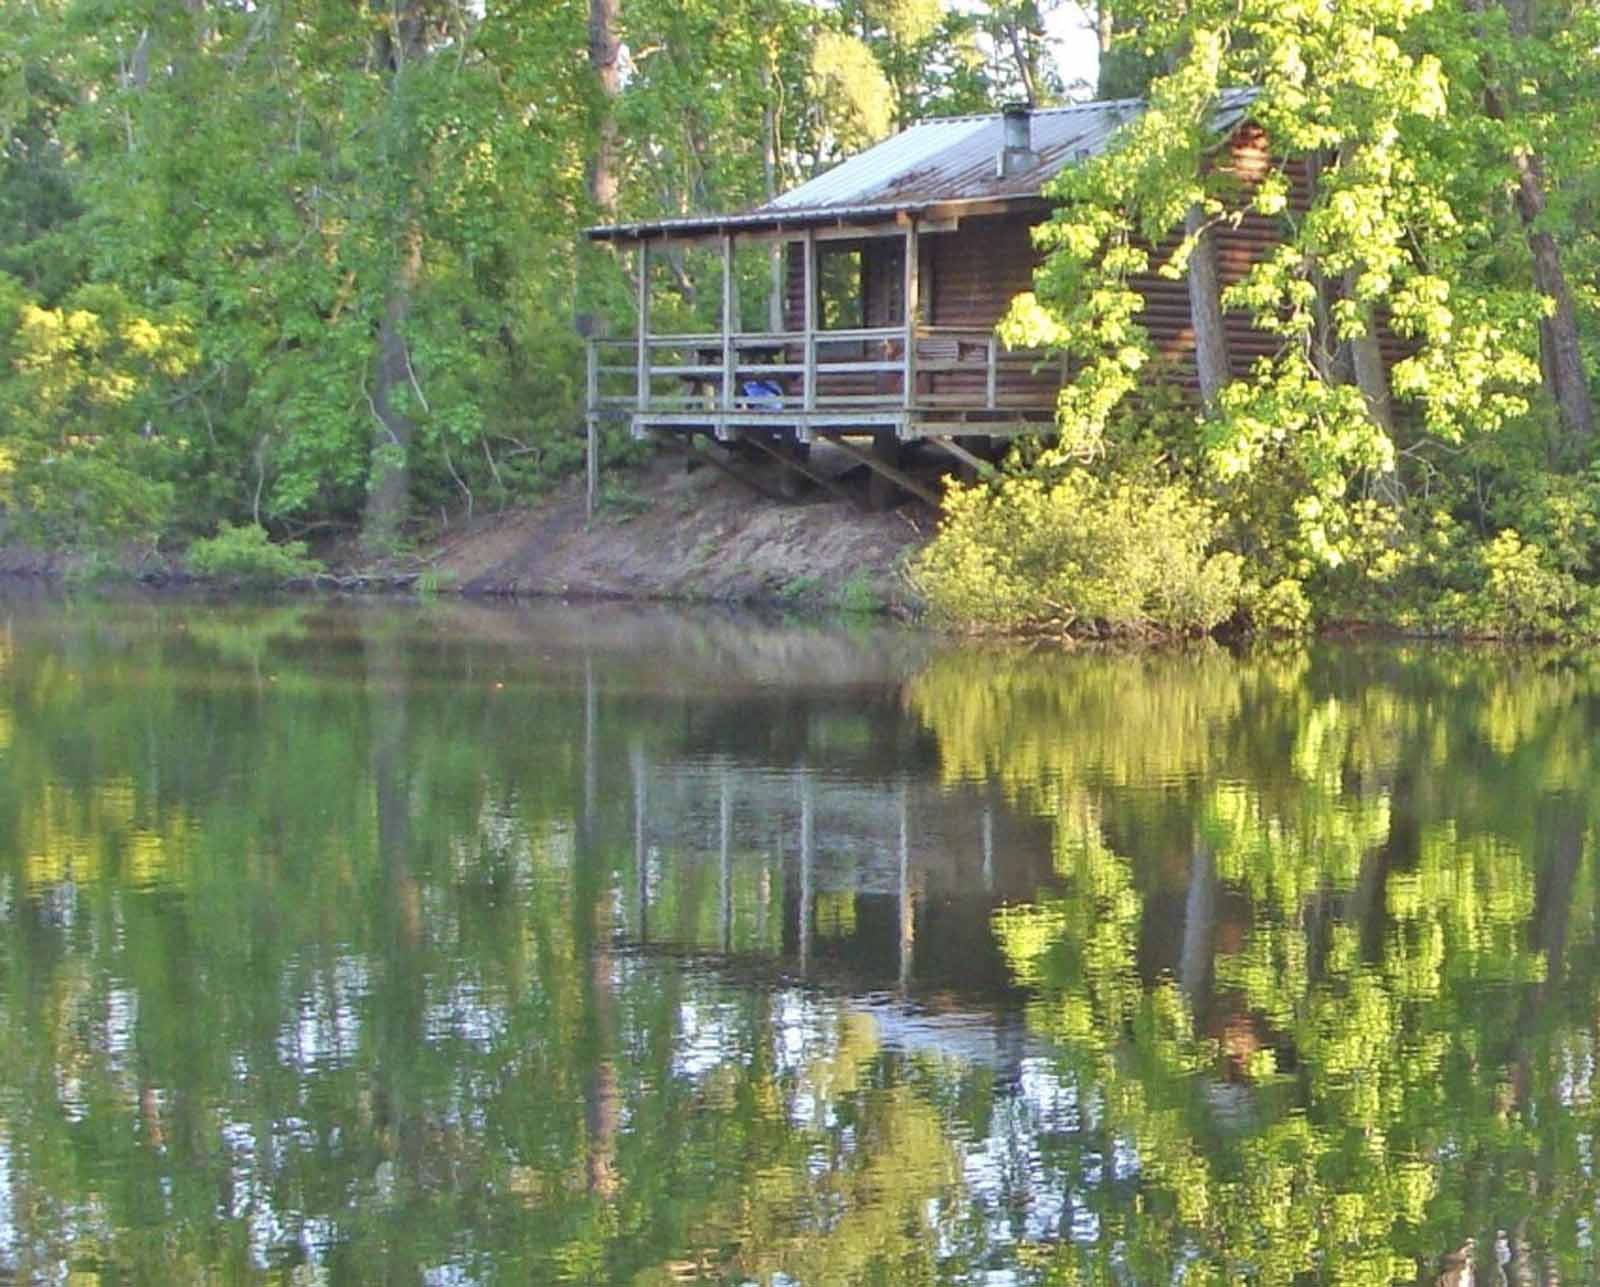 Pictures of cabins at garner state park 4J RIVER WAY CABINS AND RV CAMP - Prices Campground